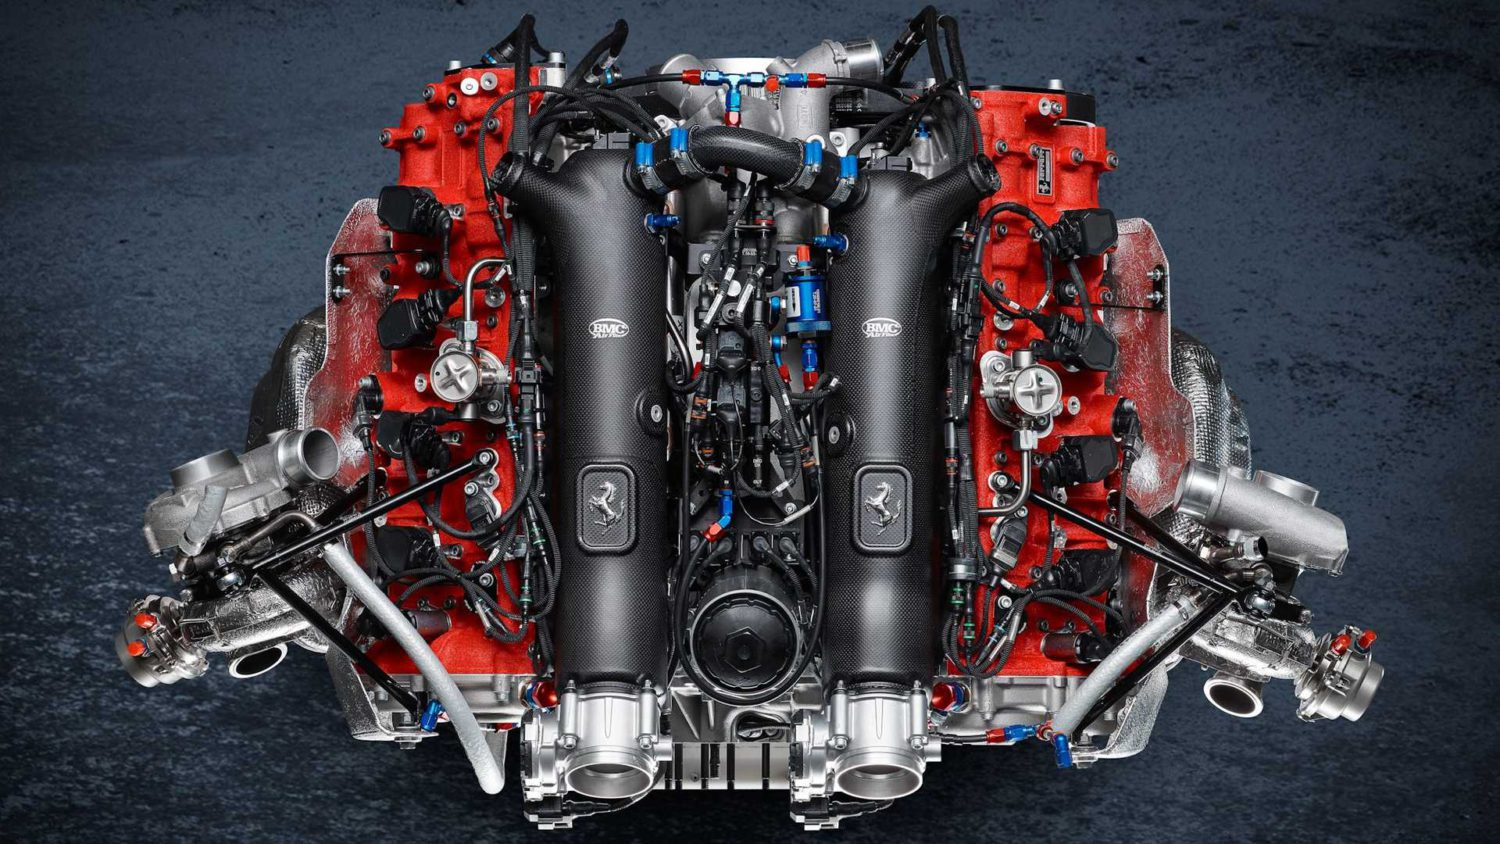 Ferrari 488 GT Modificata engine